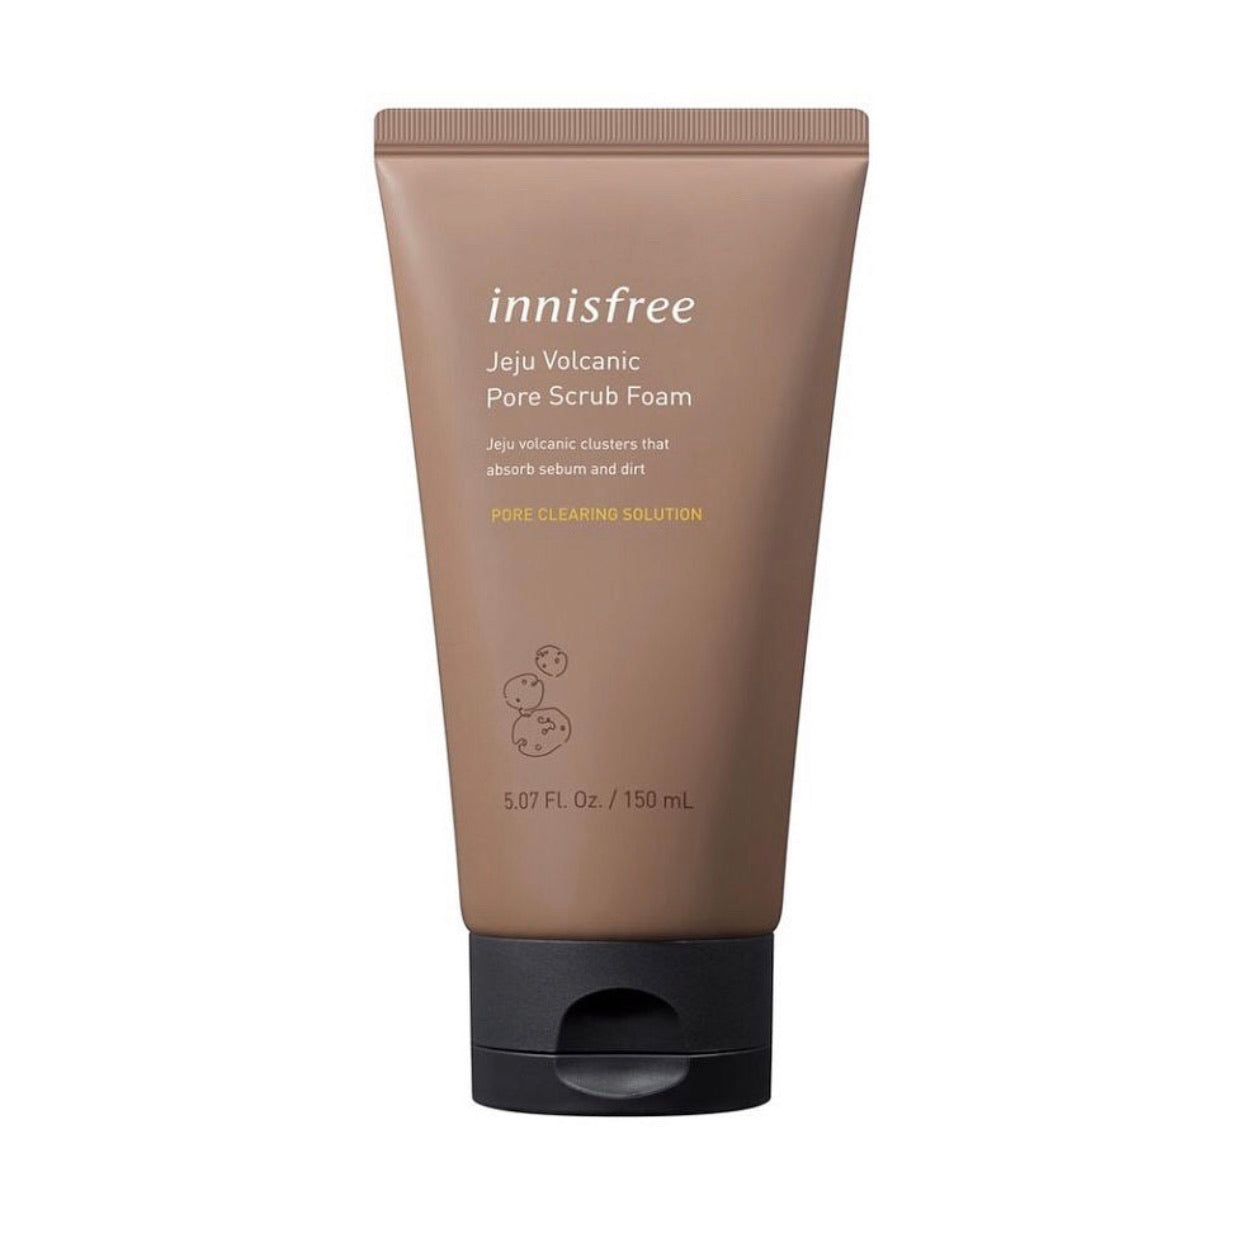 Innisfree Jeju Volcanic Pore Scrub Foam 150ml - Ginger Cosmetics